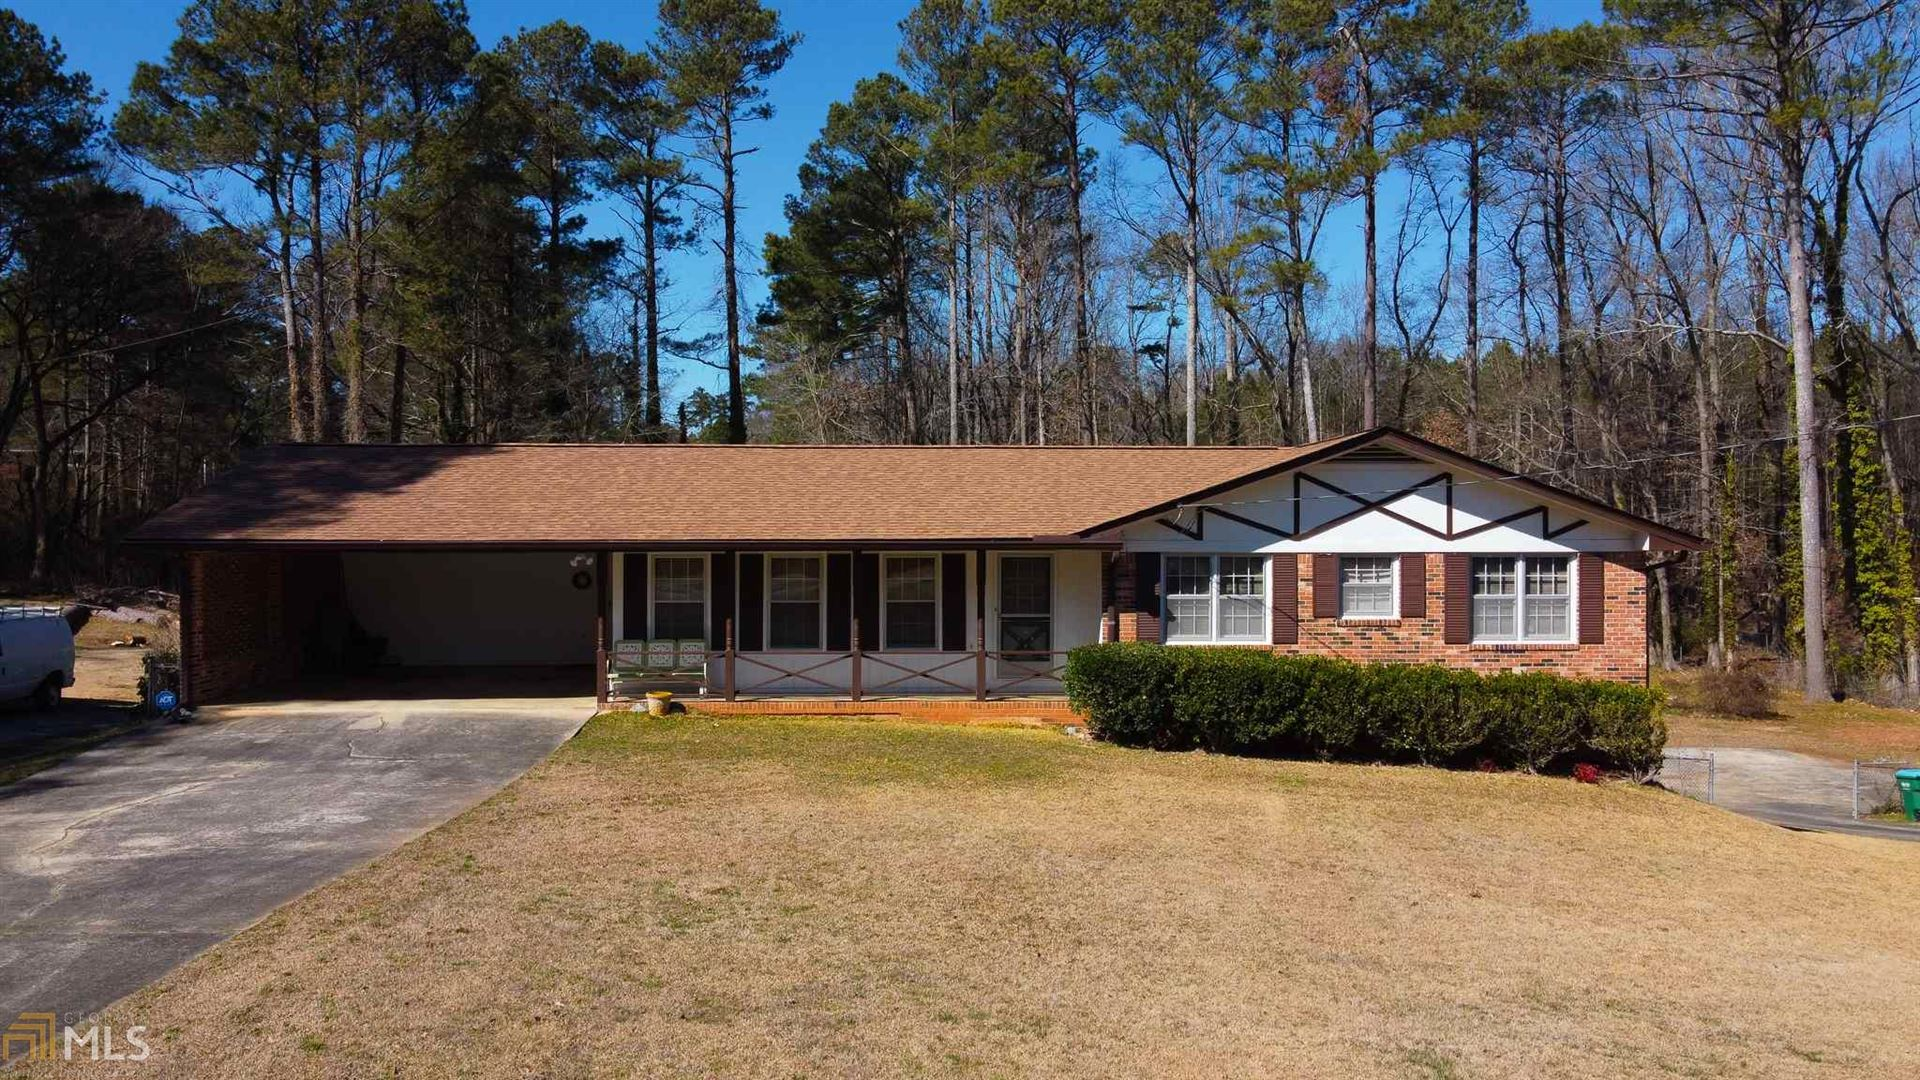 3411 Sweetwater Drive, Lawrenceville, GA 30044 - #: 8934667